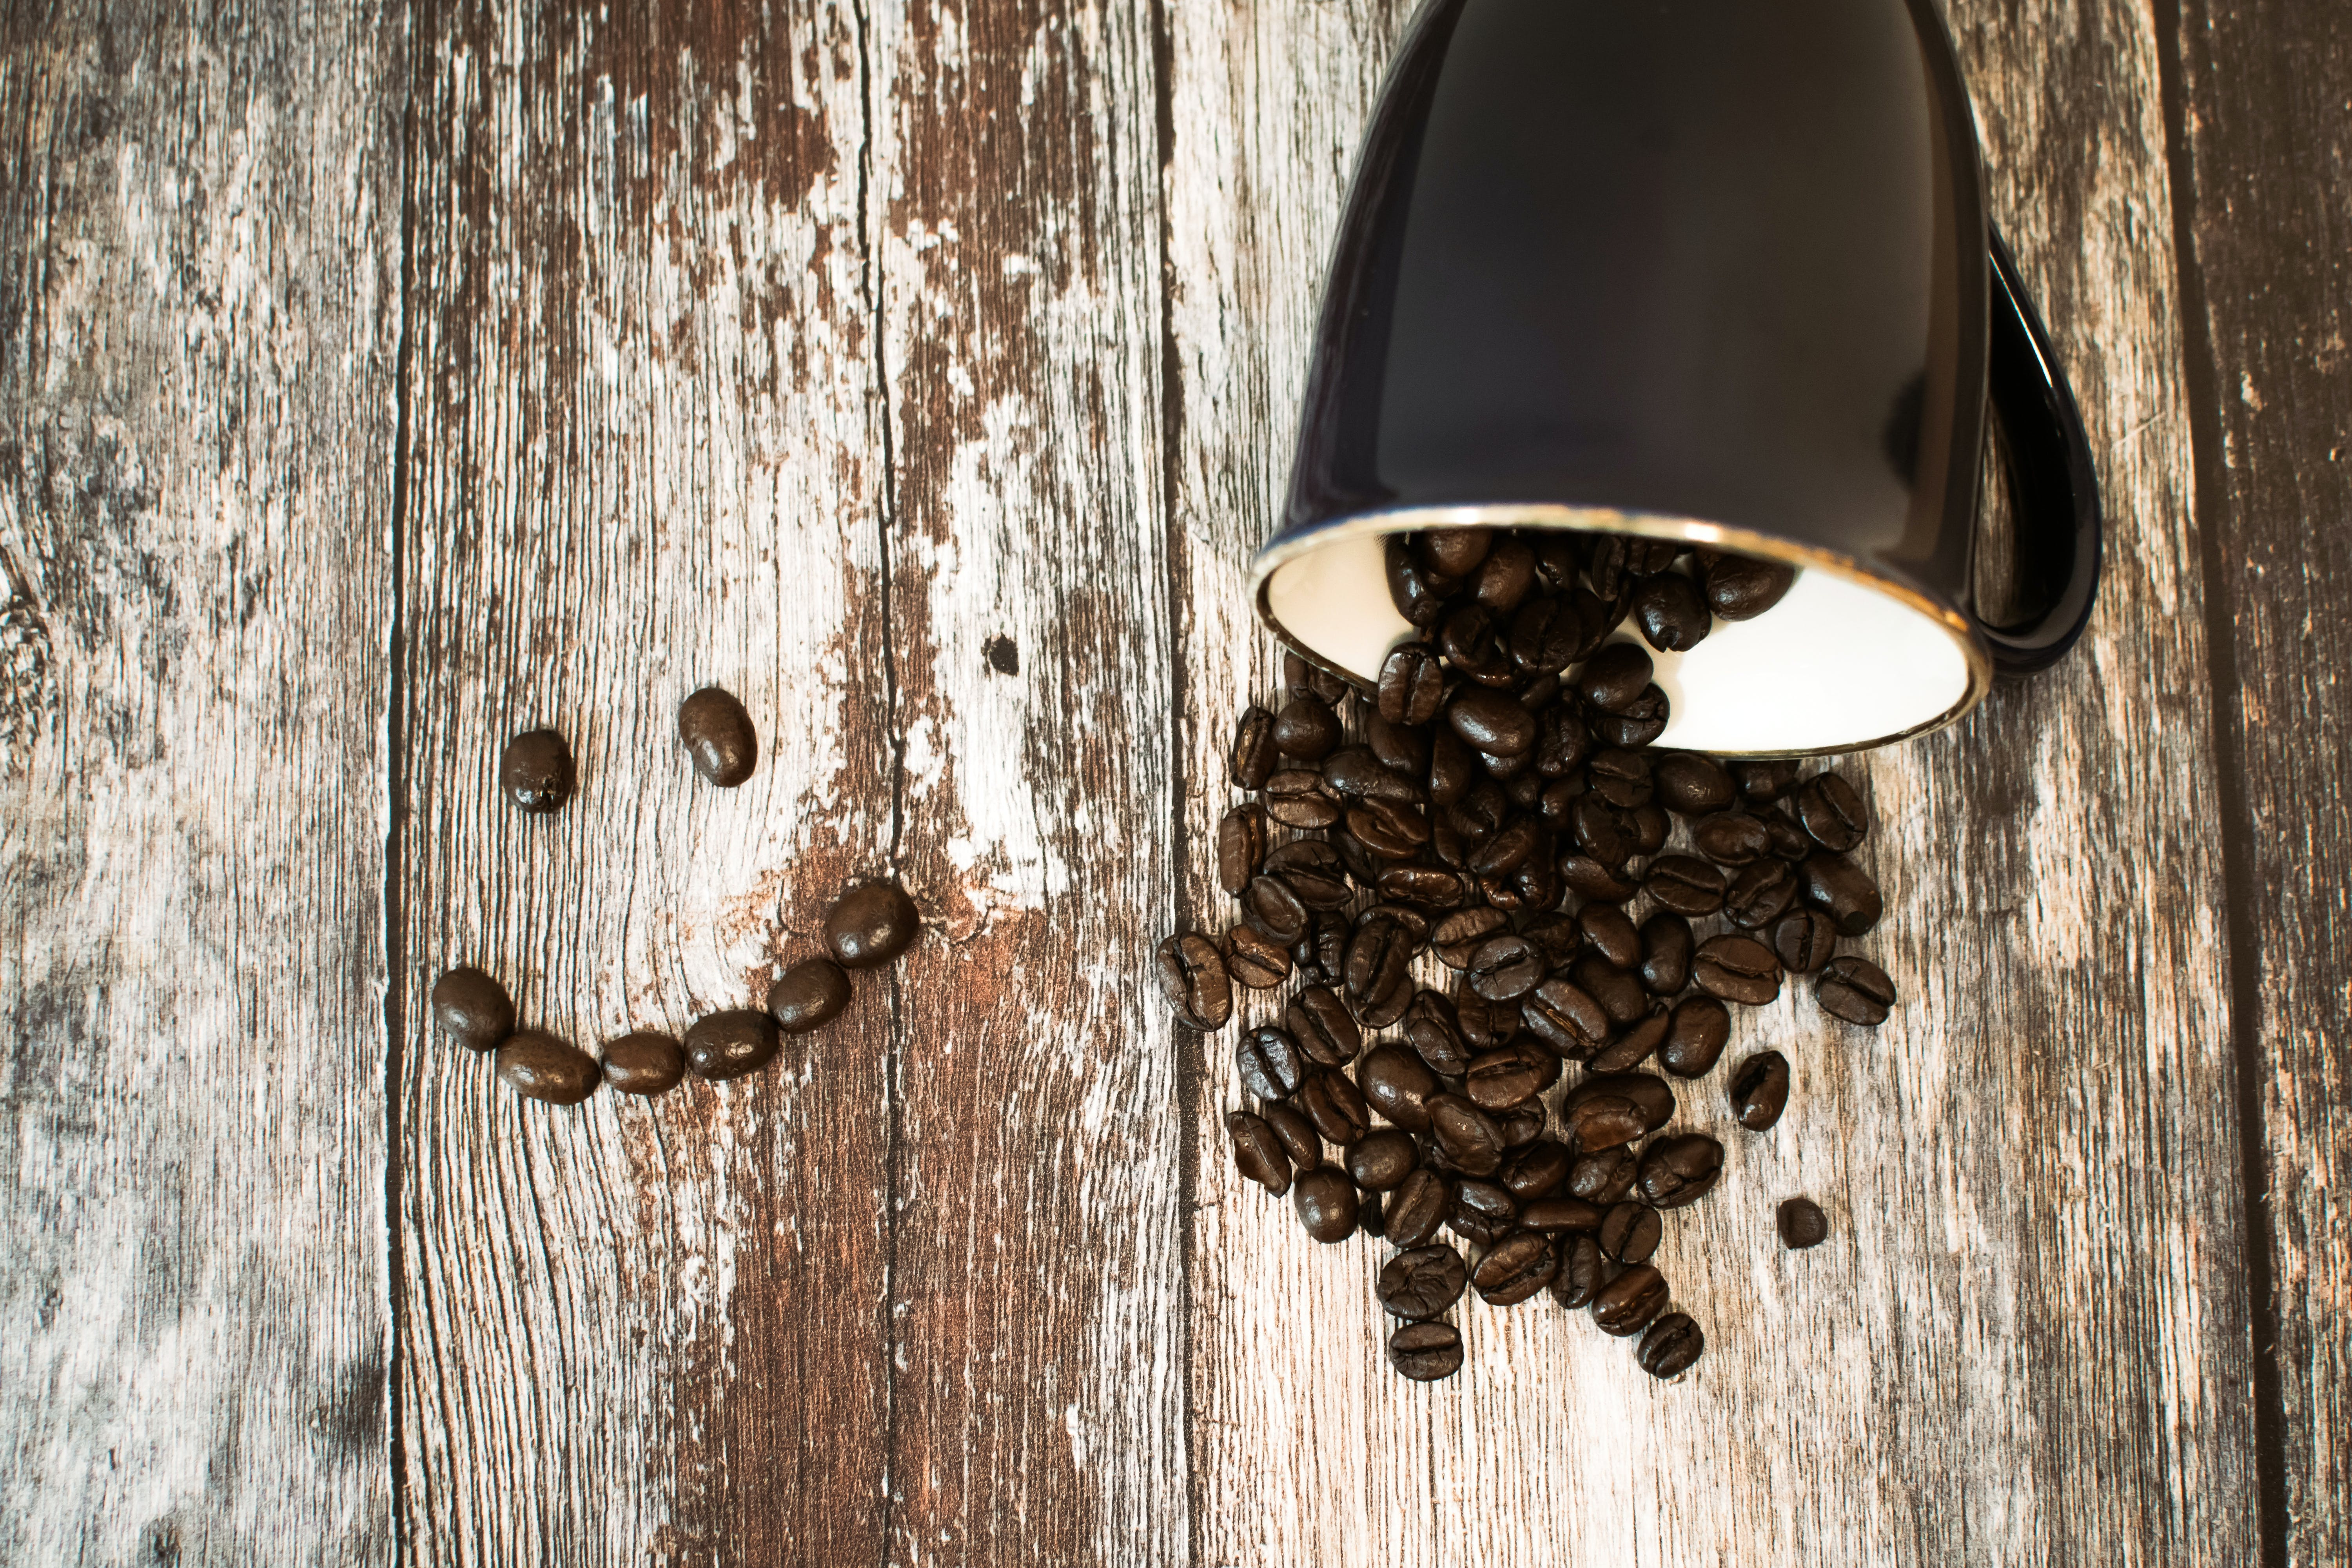 Black Ceramic Cup With Coffee Beans All on Brown Wooden Surface